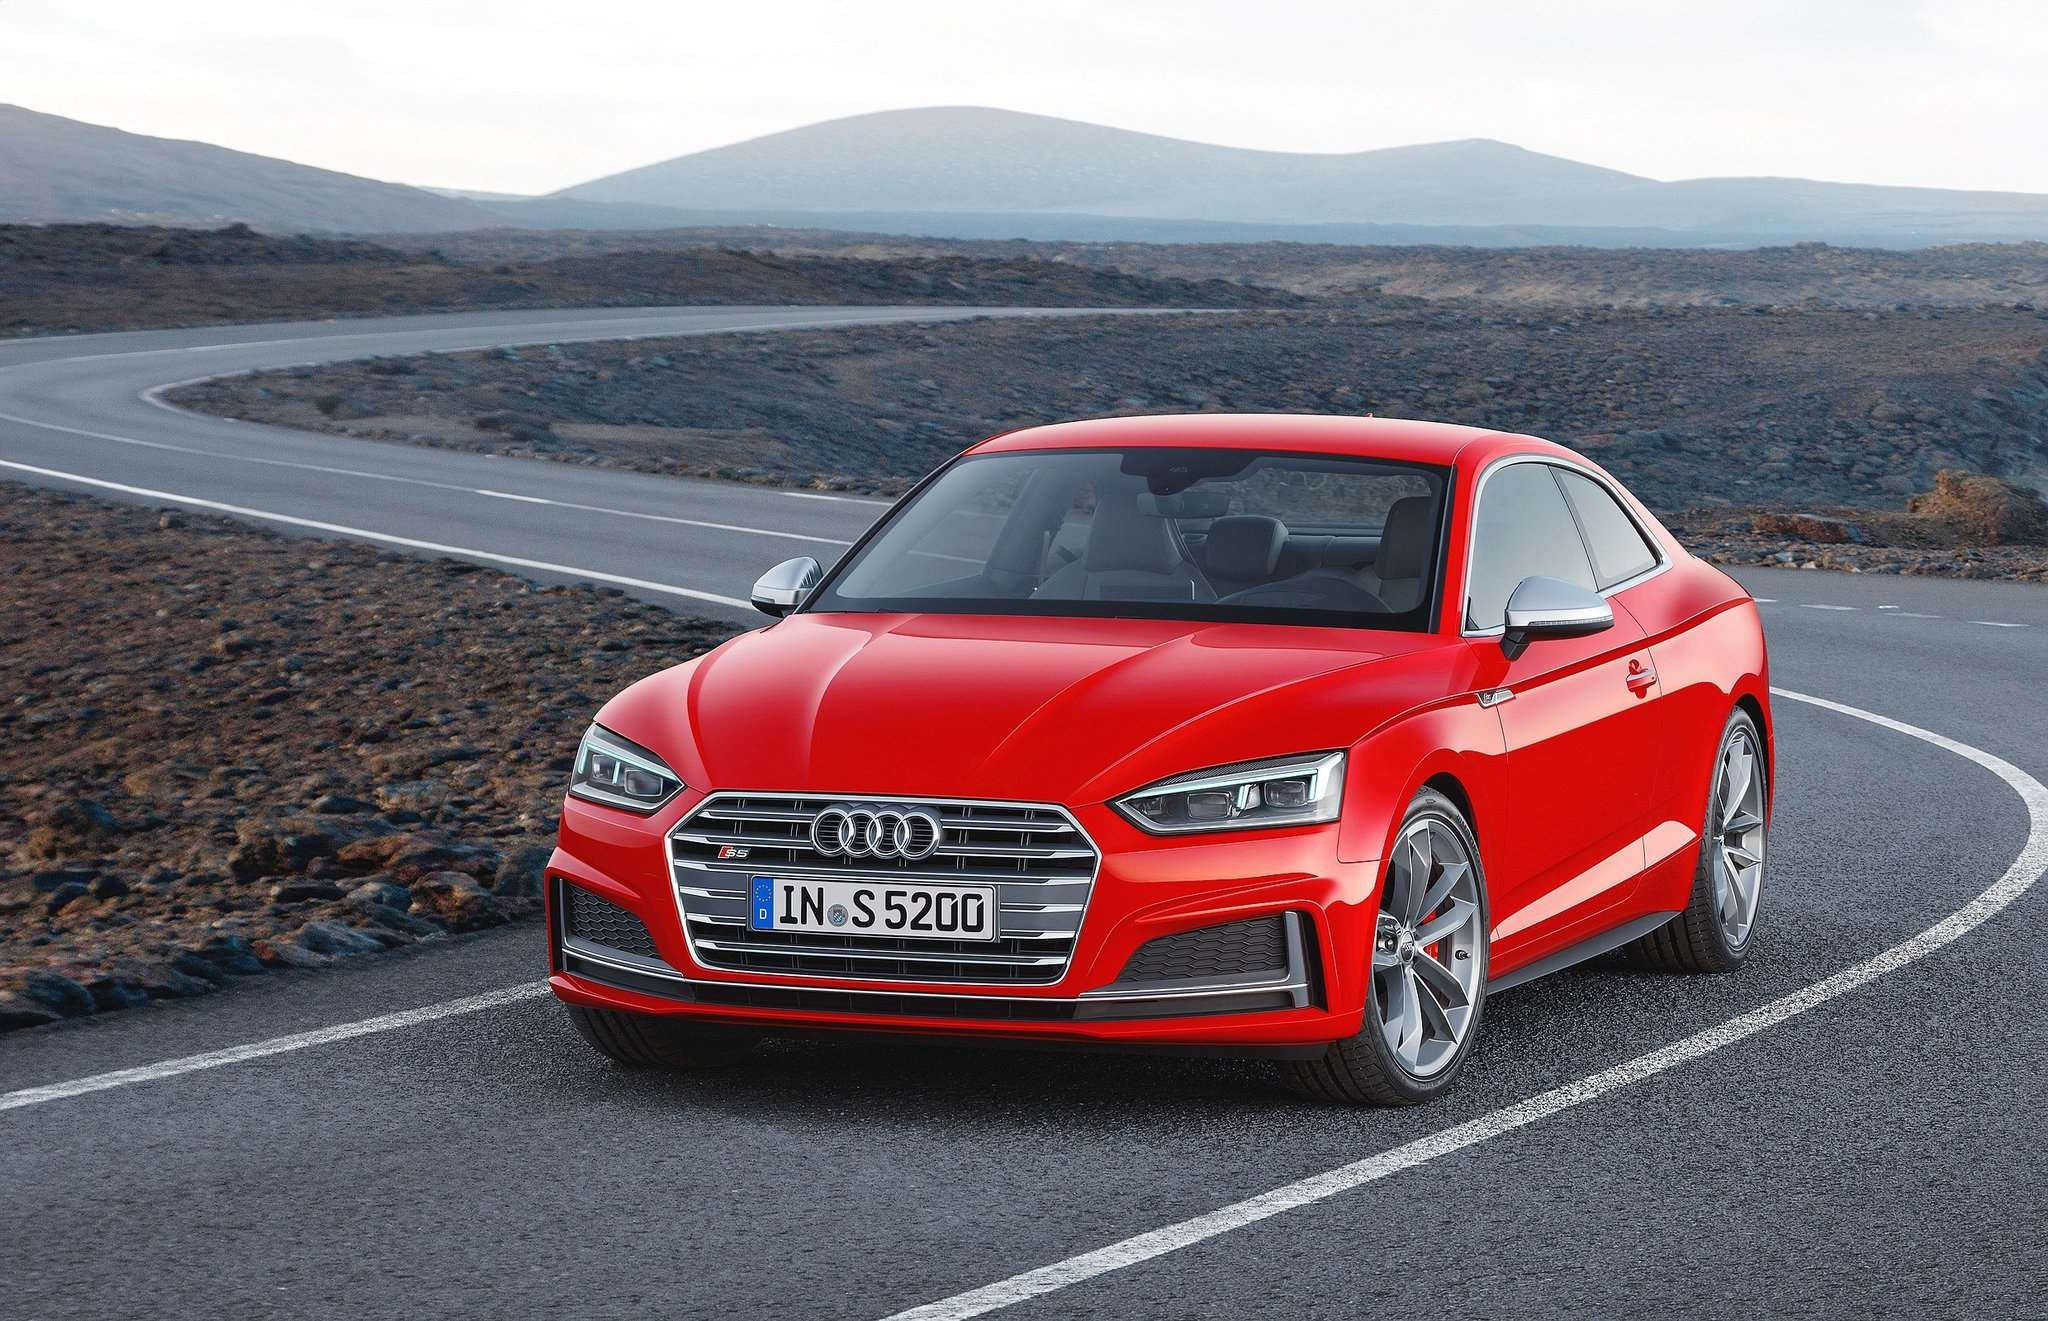 AUDIThe 2017 Audi S5, similar in appearance to its predecessor, has a three-litre, turbocharged V-6 engine with 354 horsepower.